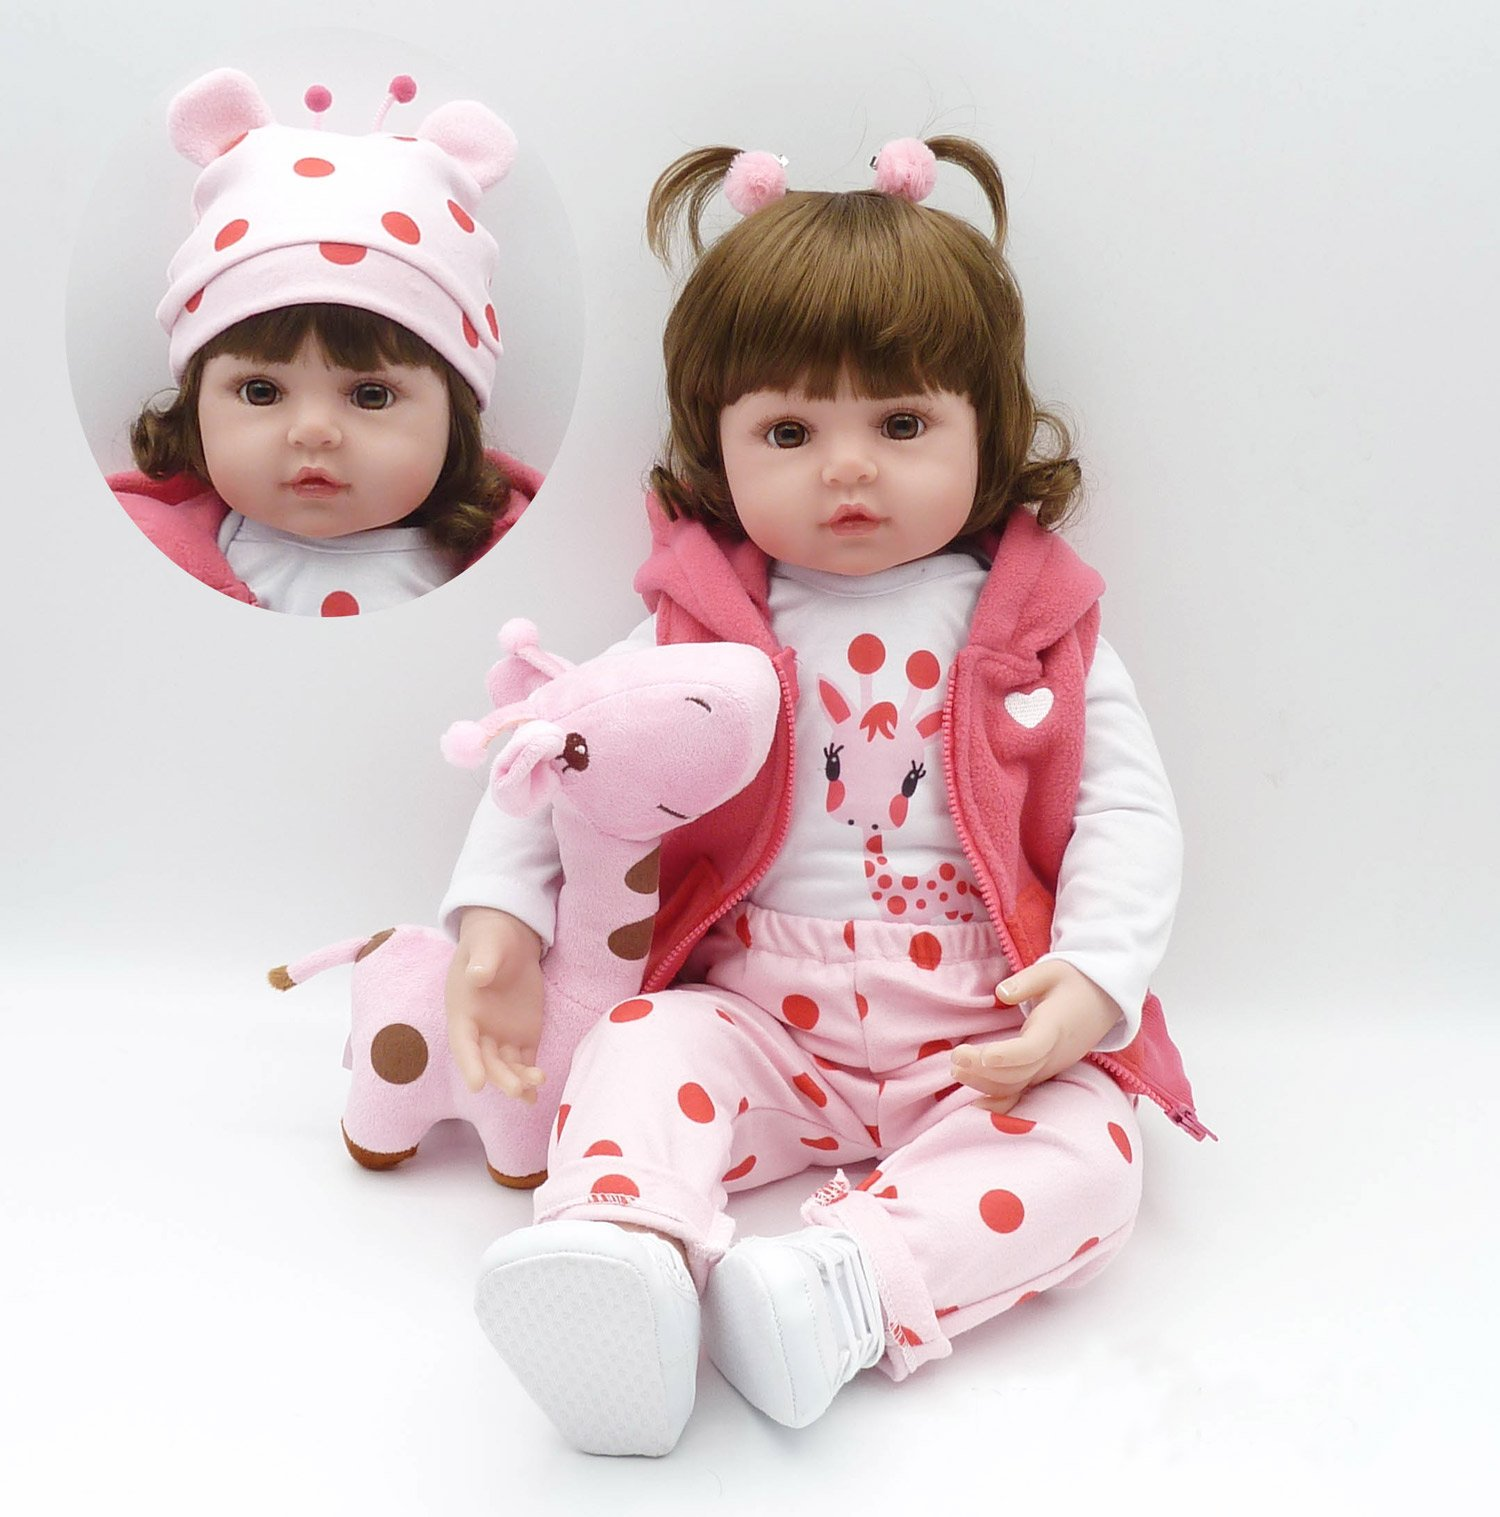 Pursue Baby Soft Floppy Body Real Life Toddler Princess Girl Doll, Little Giraffe Emily, 24 Inch Lifelike Weighted Reborn Toddler Infant Doll Toy Snuggle Children Gift